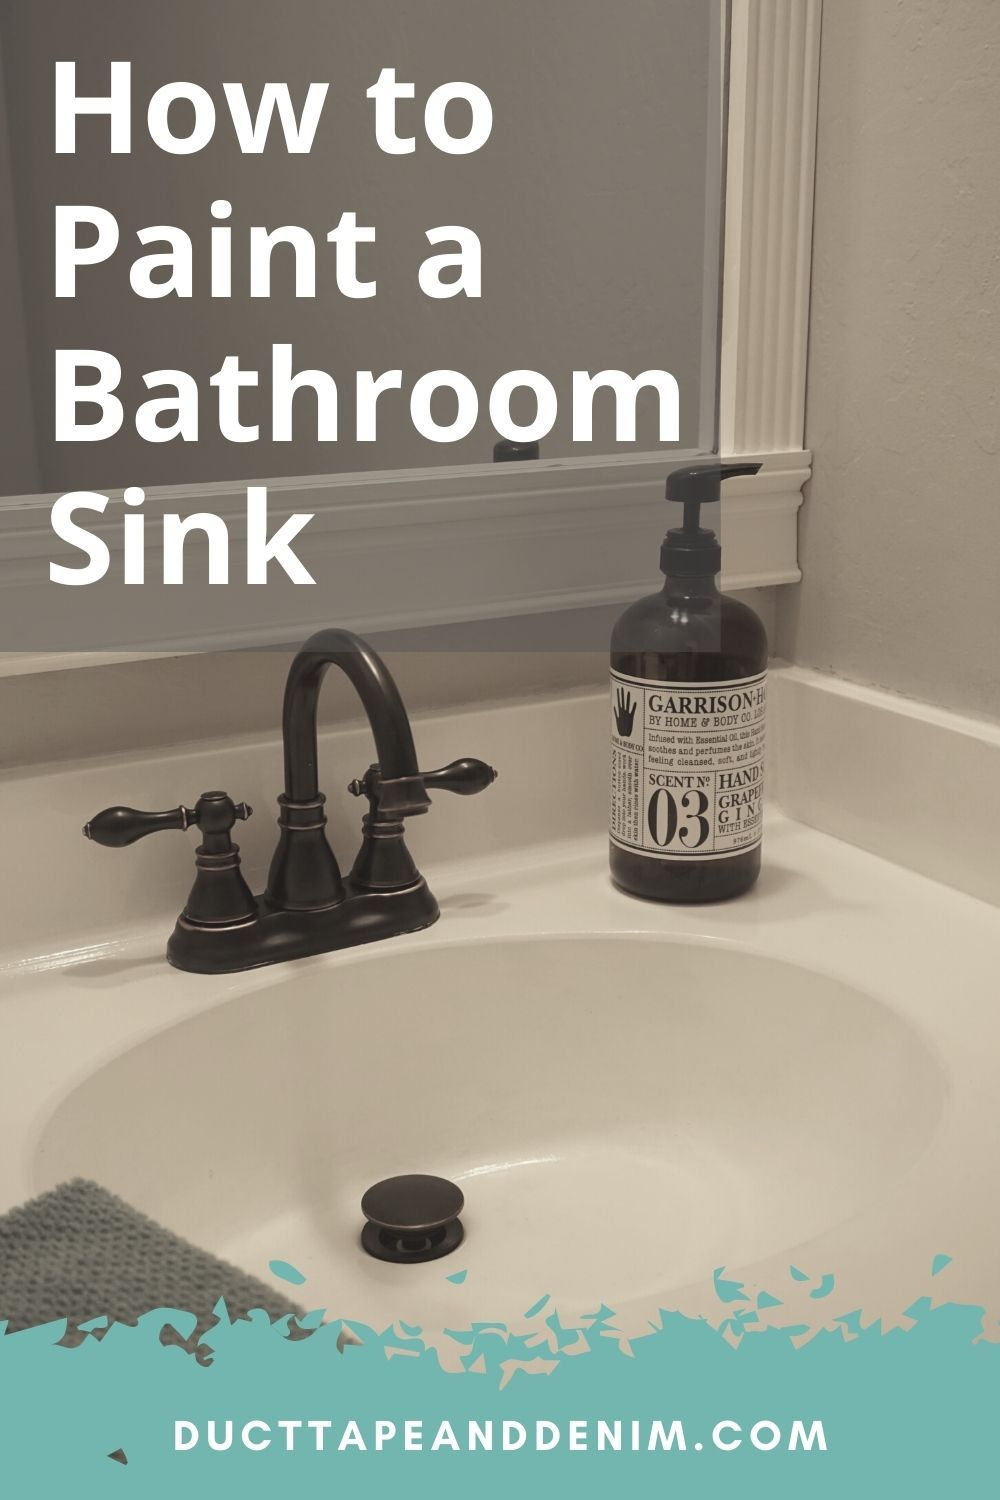 How To Paint A Sink A Diy Bathroom Project Your Budget Will Love Painting Bathroom Painting A Sink Bathroom Sink Diy [ 1500 x 1000 Pixel ]